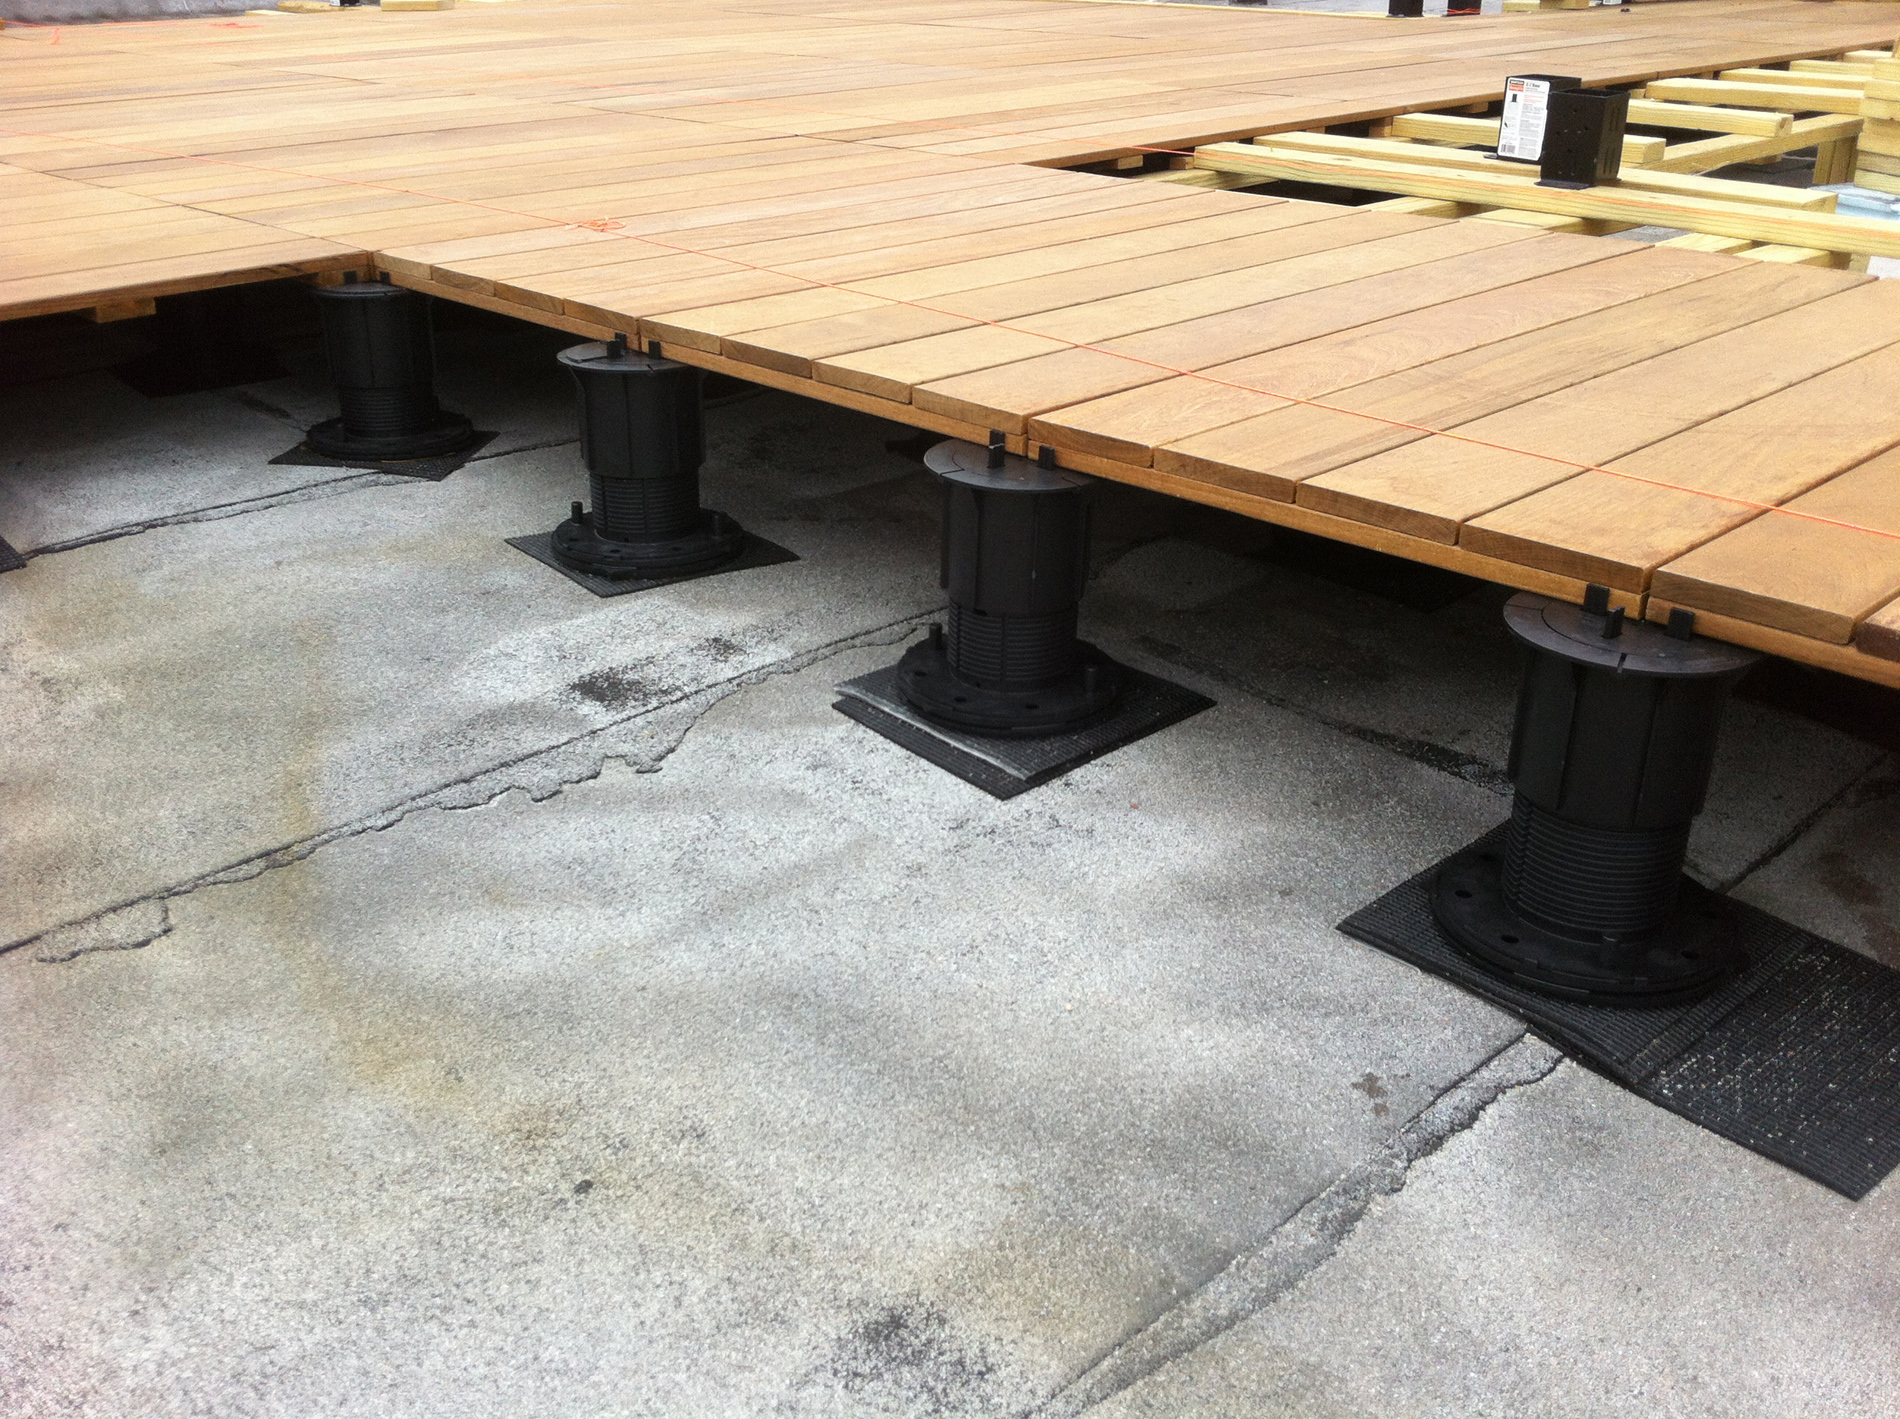 Adjustable Pedestal Decking Systems All Decked Out within proportions 1900 X 1419